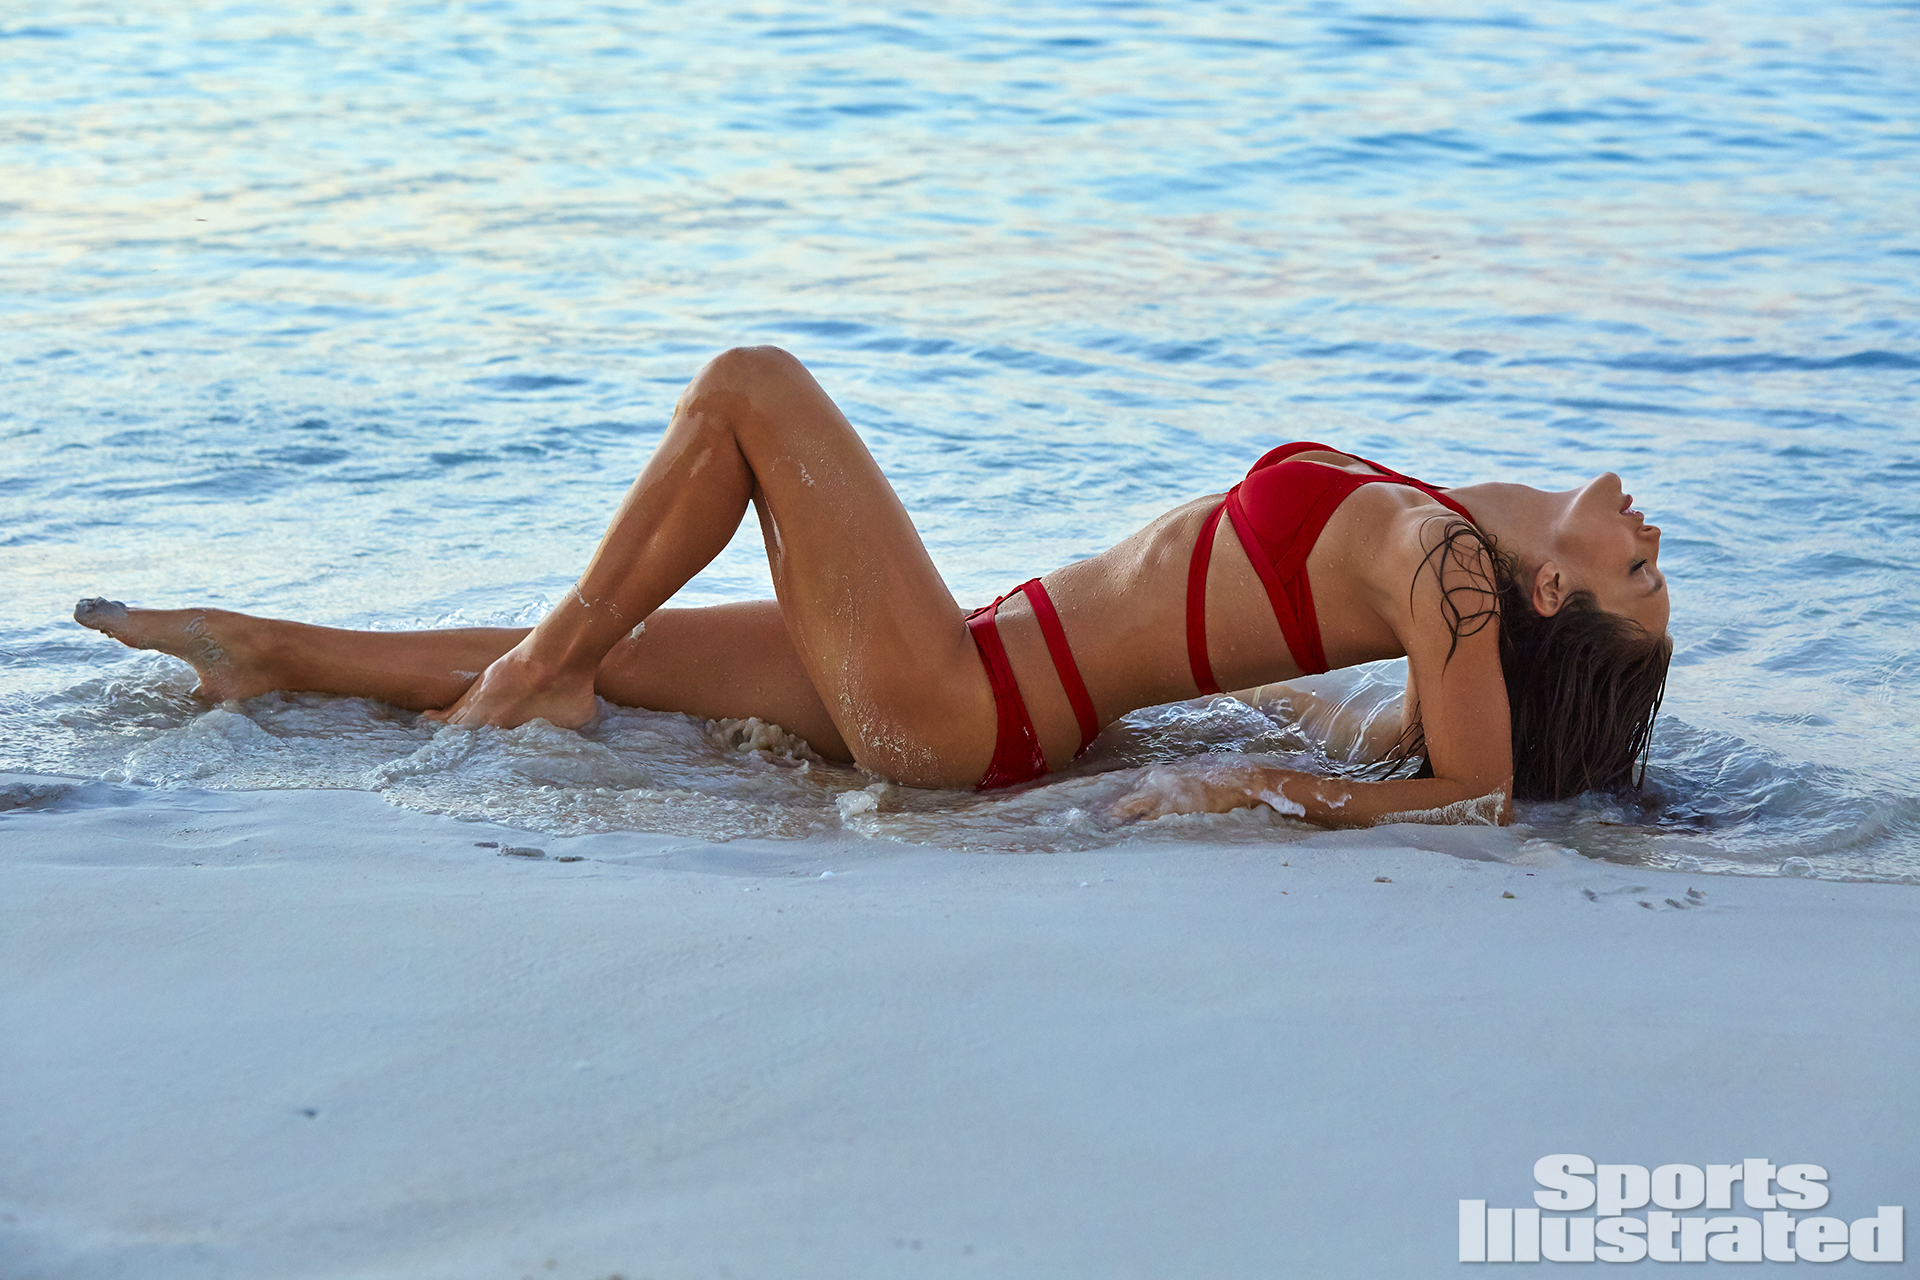 Emily DiDonato was photographed by James Macari in Turks & Caicos. Swimsuit by BOUND+TIDE by Mitchell Kass.